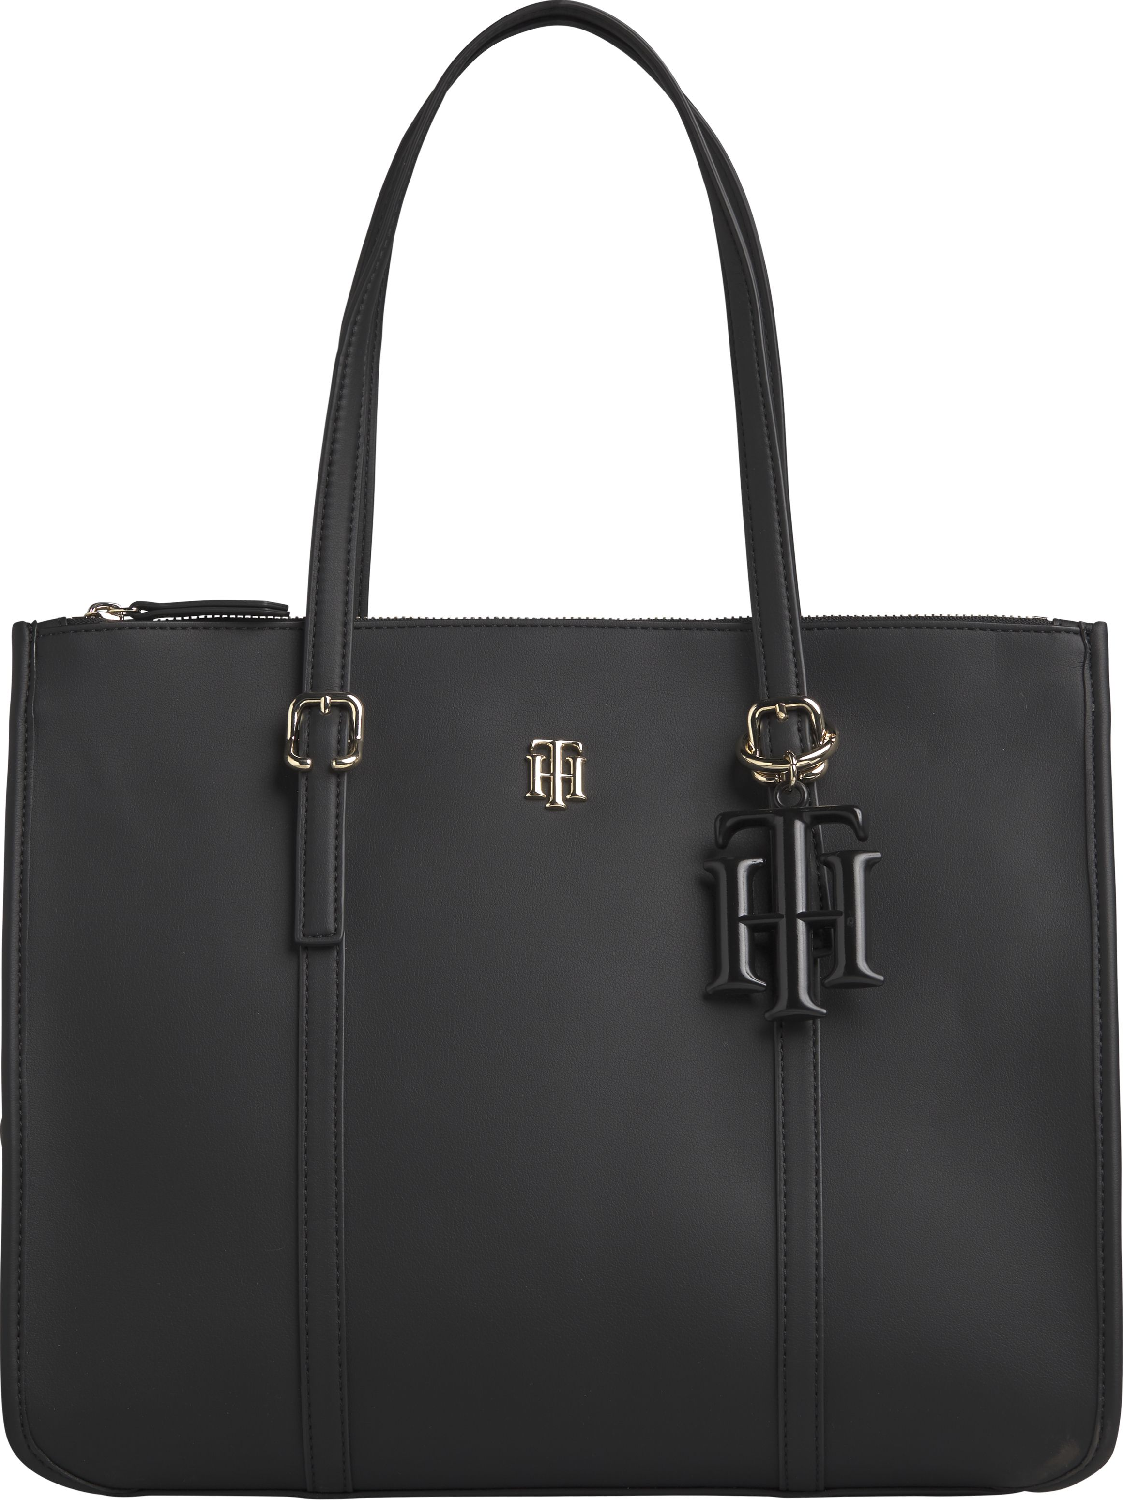 TH Chic Satchel